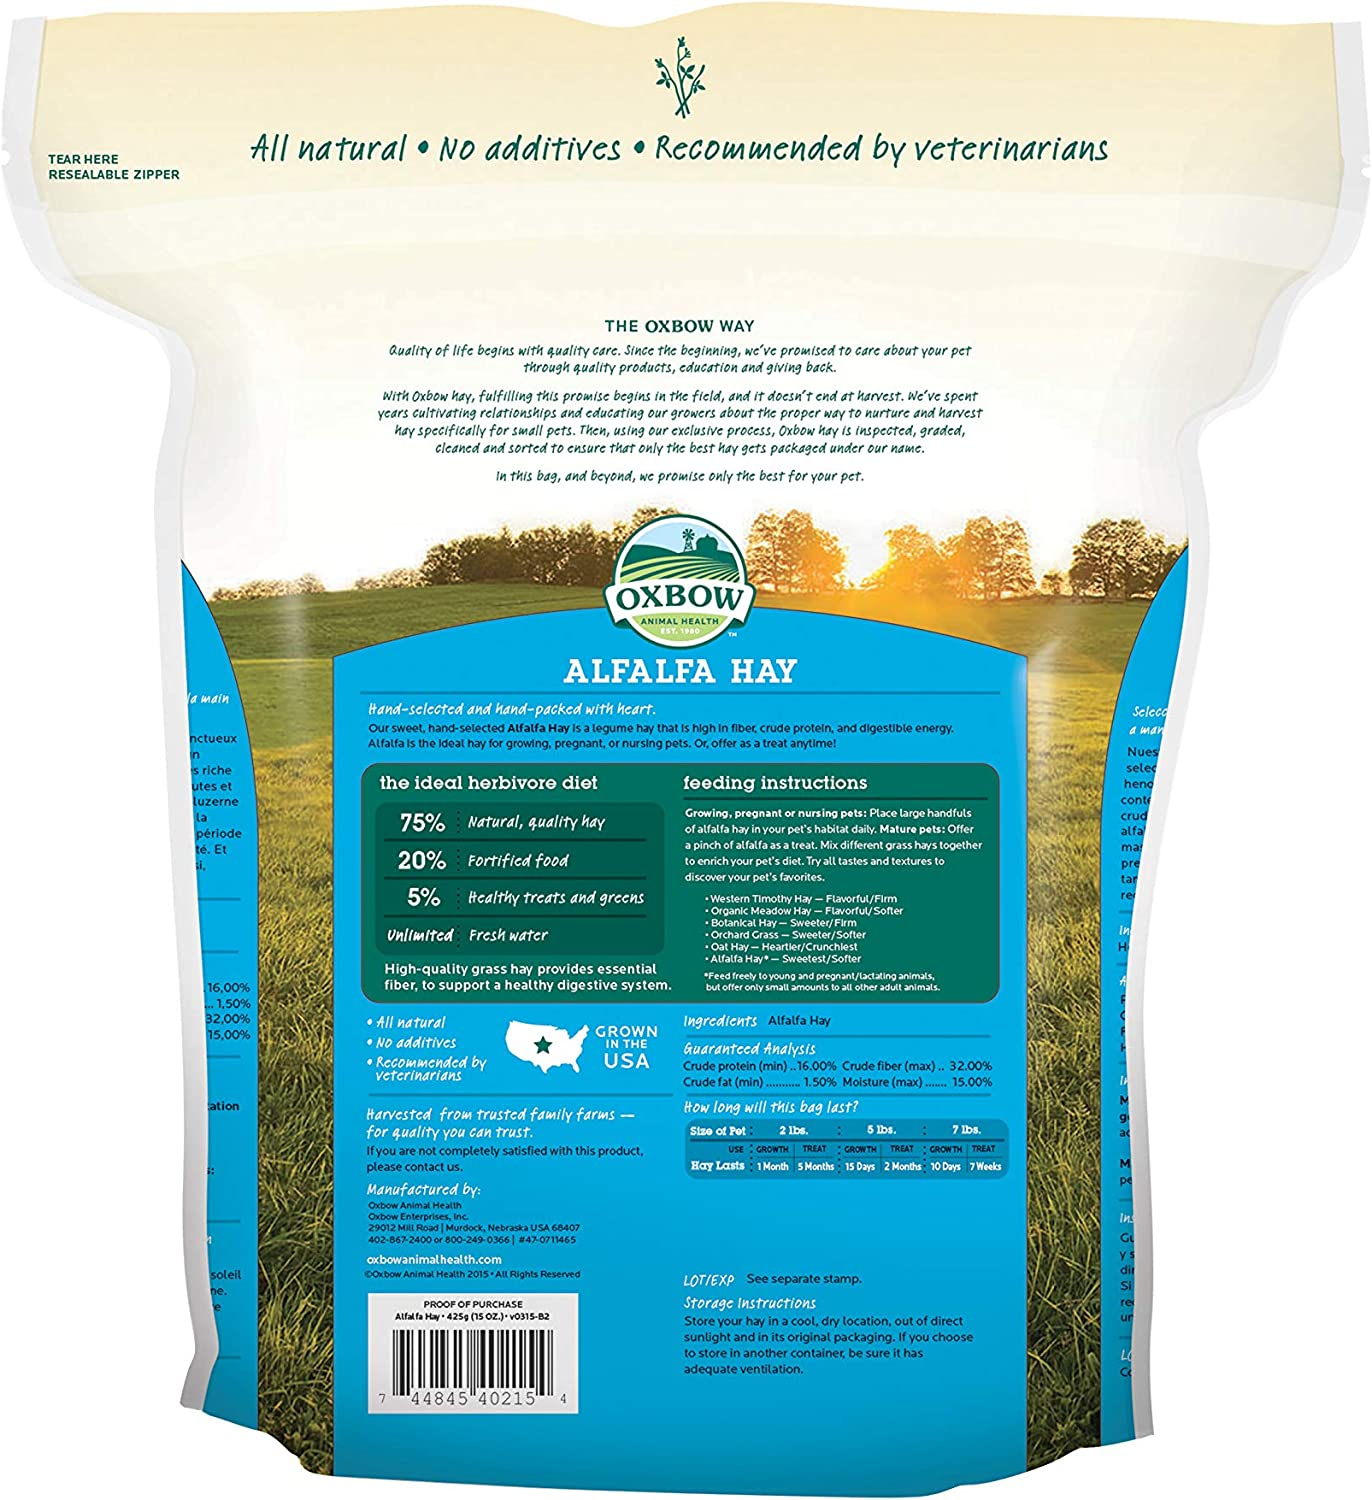 Oxbow Animal Health Alfalfa Hay, For Rabbits, Guinea Pigs, And Small Pets, Grown In The USA, Hand-Selected And Hand-Sorted, 15 Ounce: Pet Supplies